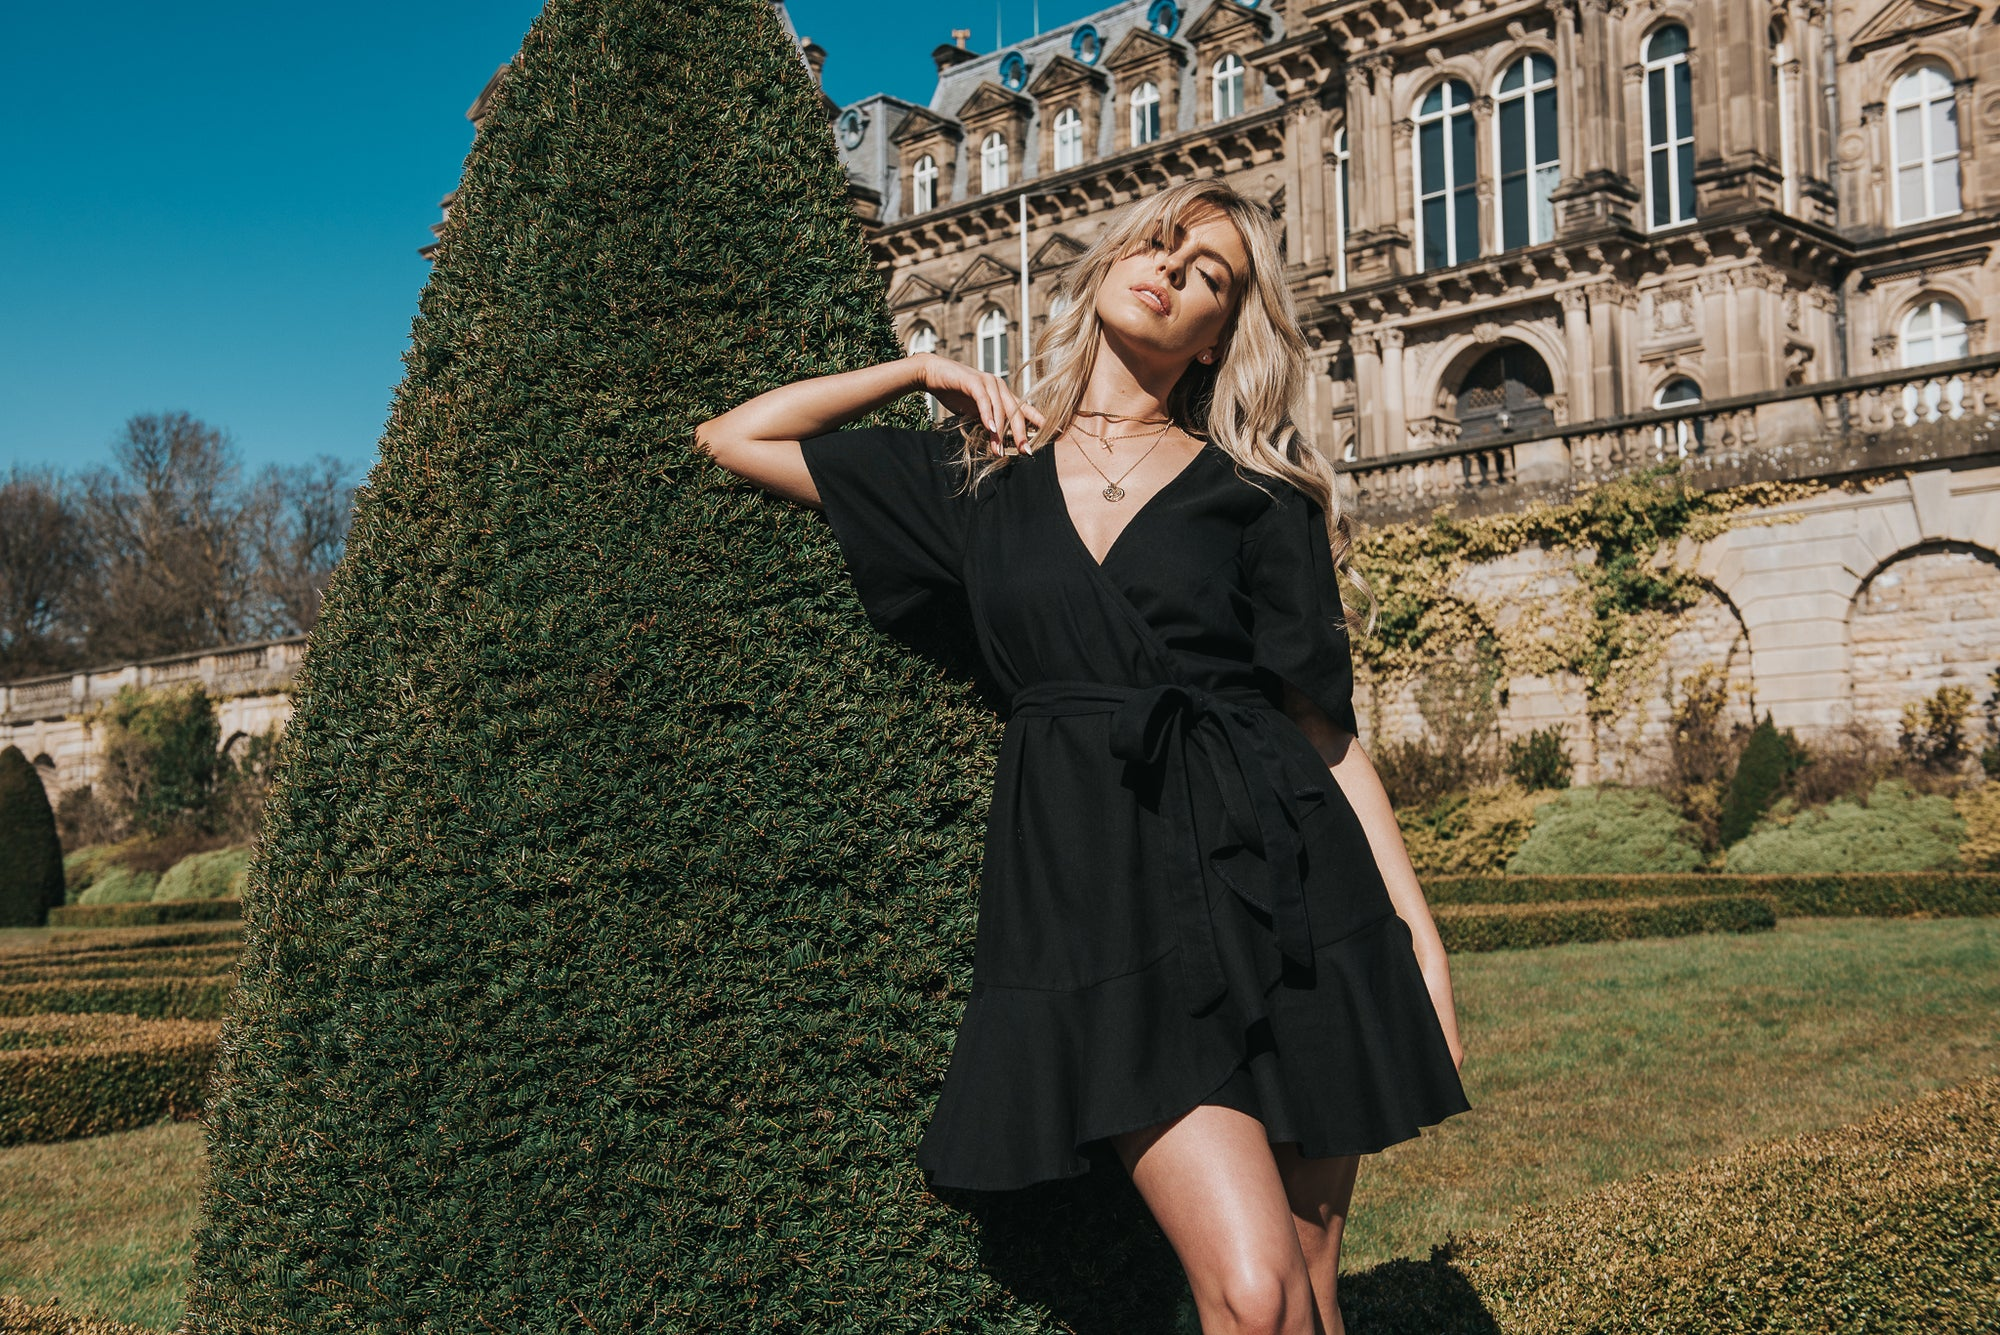 Standing in the grounds of the Bowes Museum. The Isabella mini wrap dress is stylish and sustainable. Fabricated in our handwoven black cotton, all natural fibres of which 30% is from a recycled source. Aiding a more circular textile economy